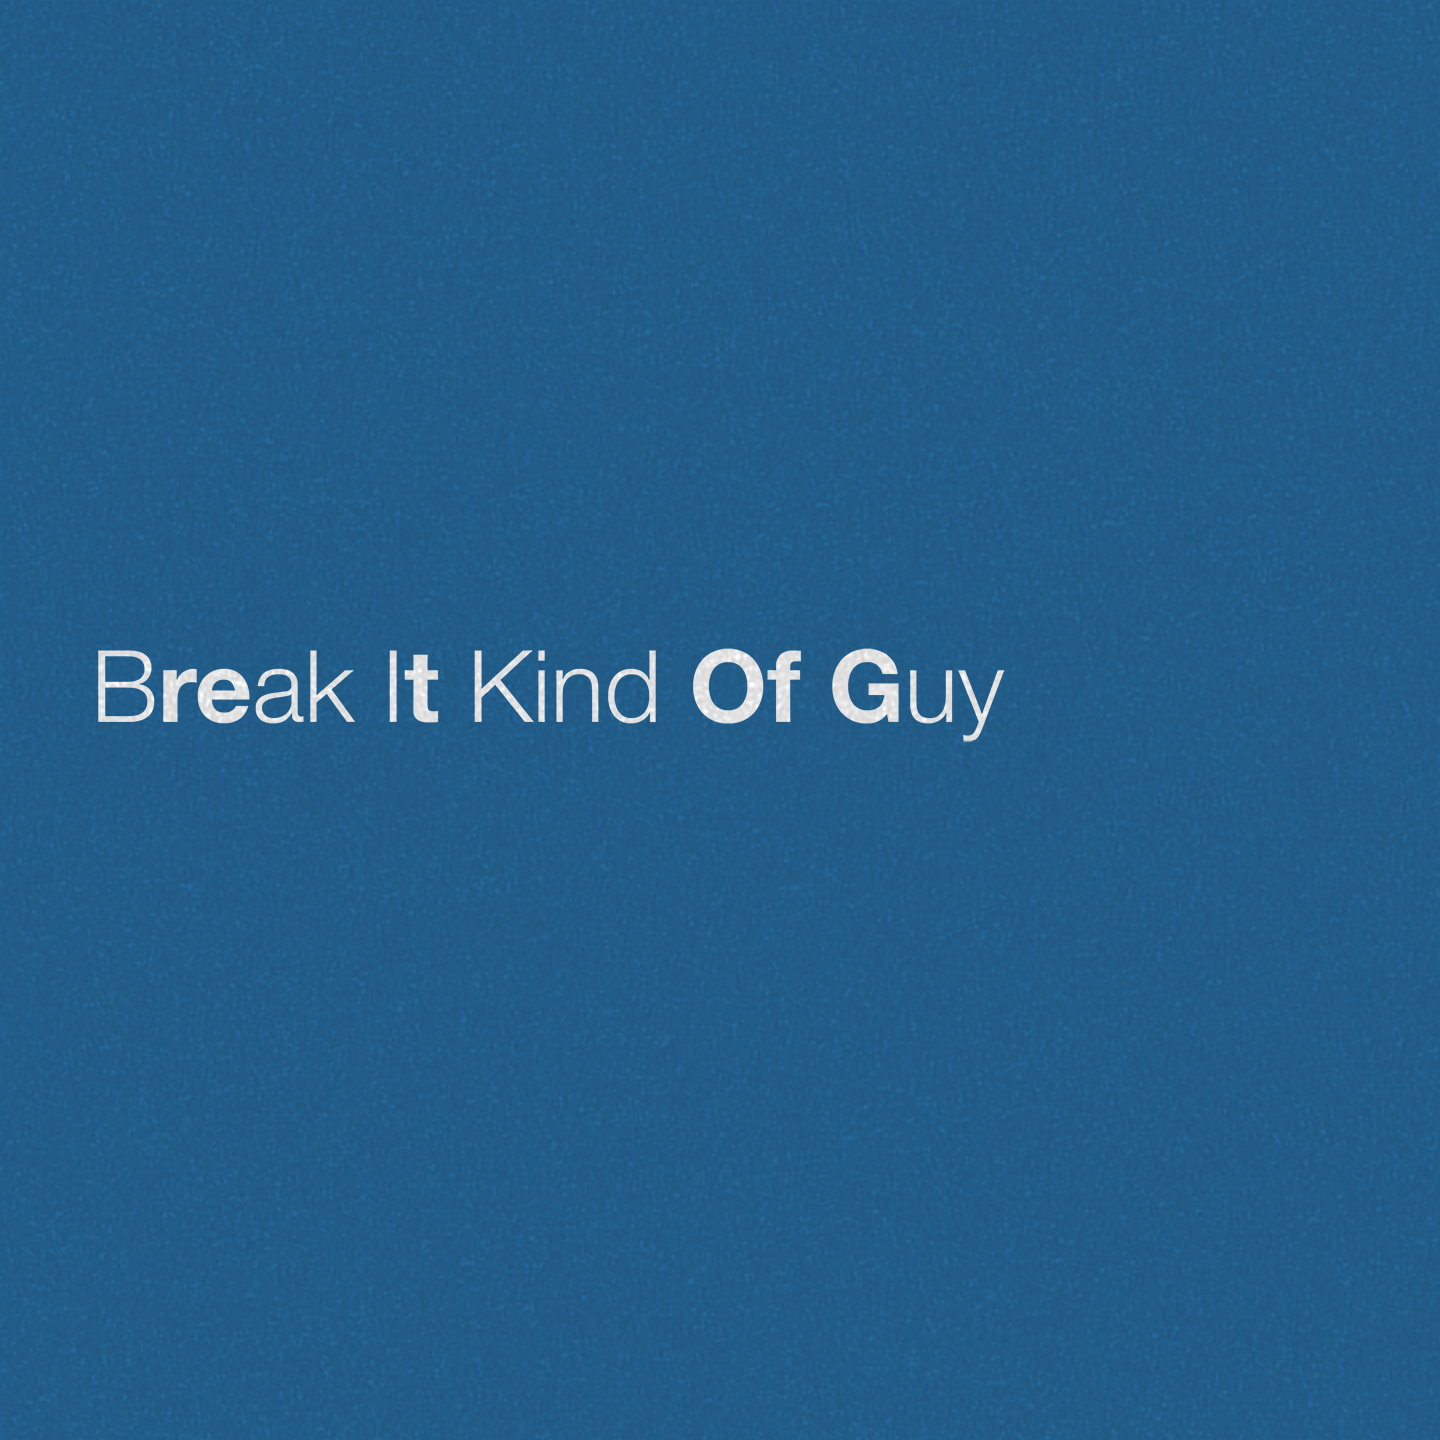 Break It Kind Of Guy